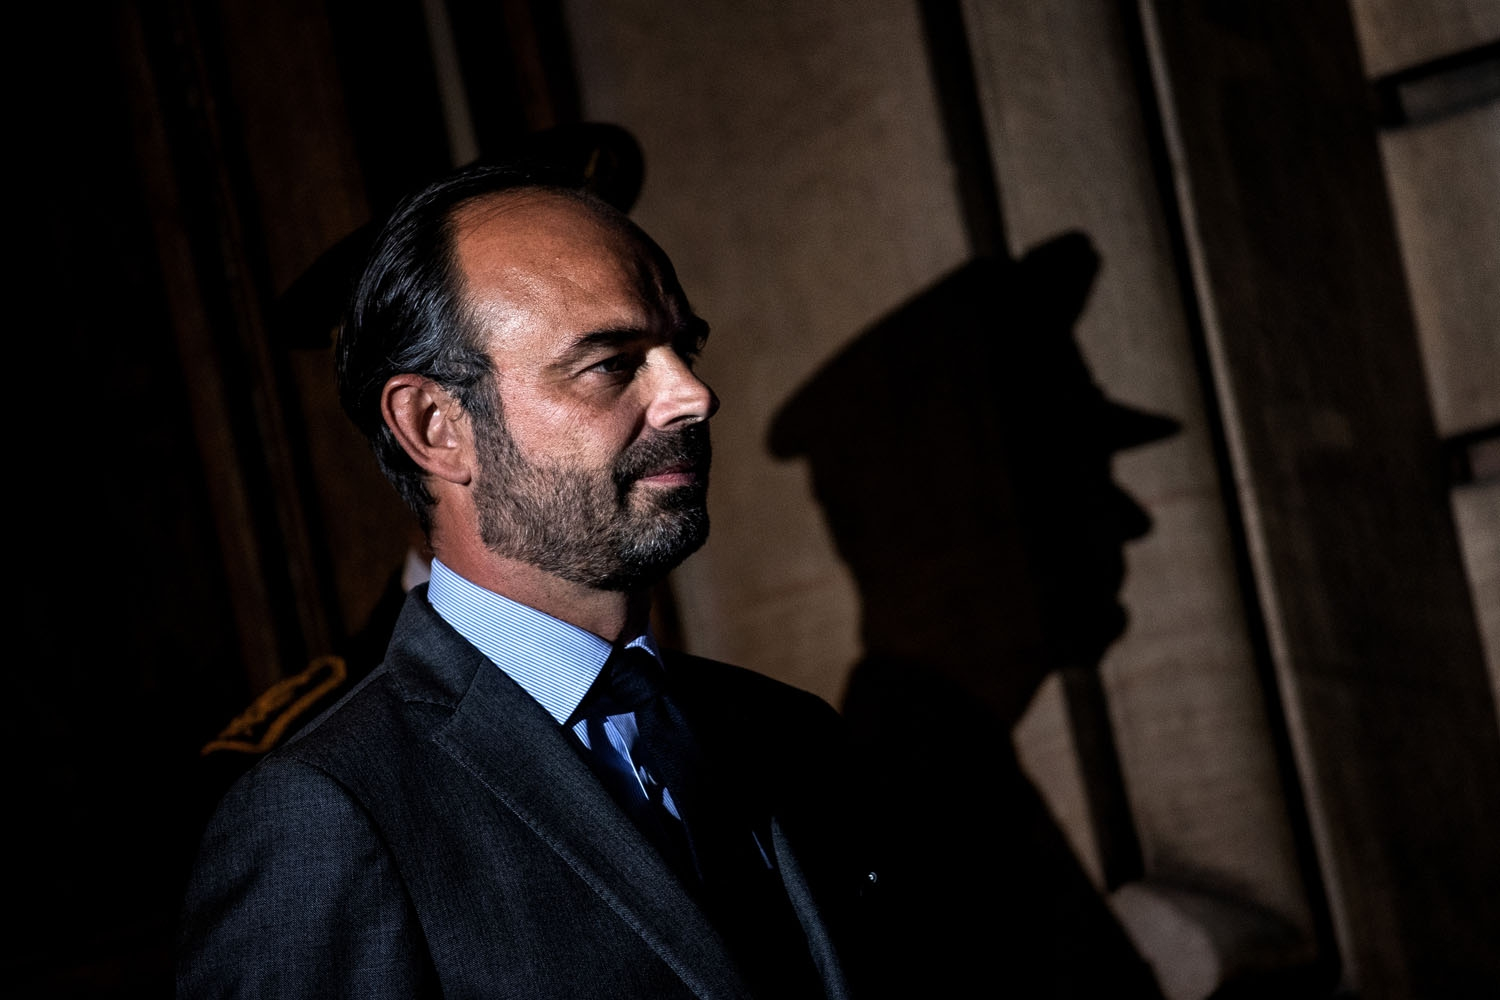 French prime minister and interim interior minister Edouard Philippe (L) waits for G6 ministers arrival on October 8, 2018 in Lyon, during the G6 Summit of Interior Ministers of France, Germany, United Kingdom, Spain, Italy and Poland. - Interior minister